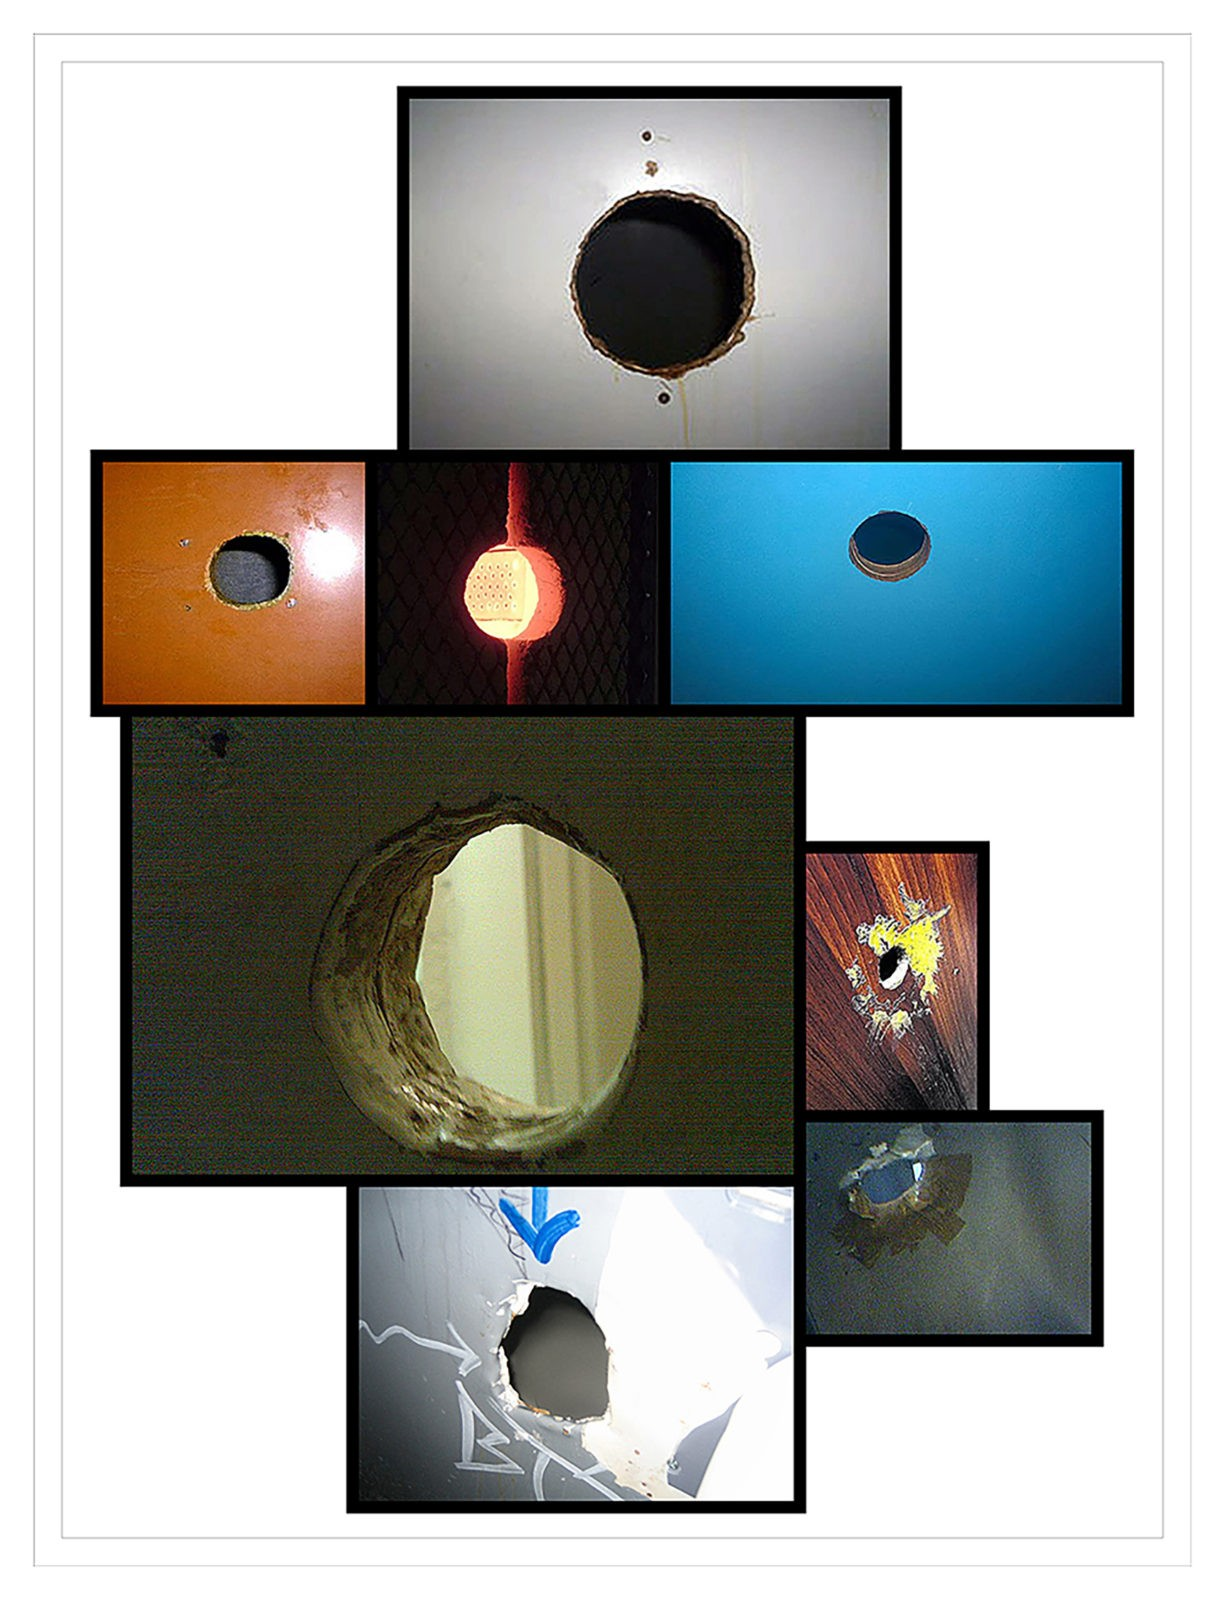 Work # 915: Untitled #80 (eight glory holes)